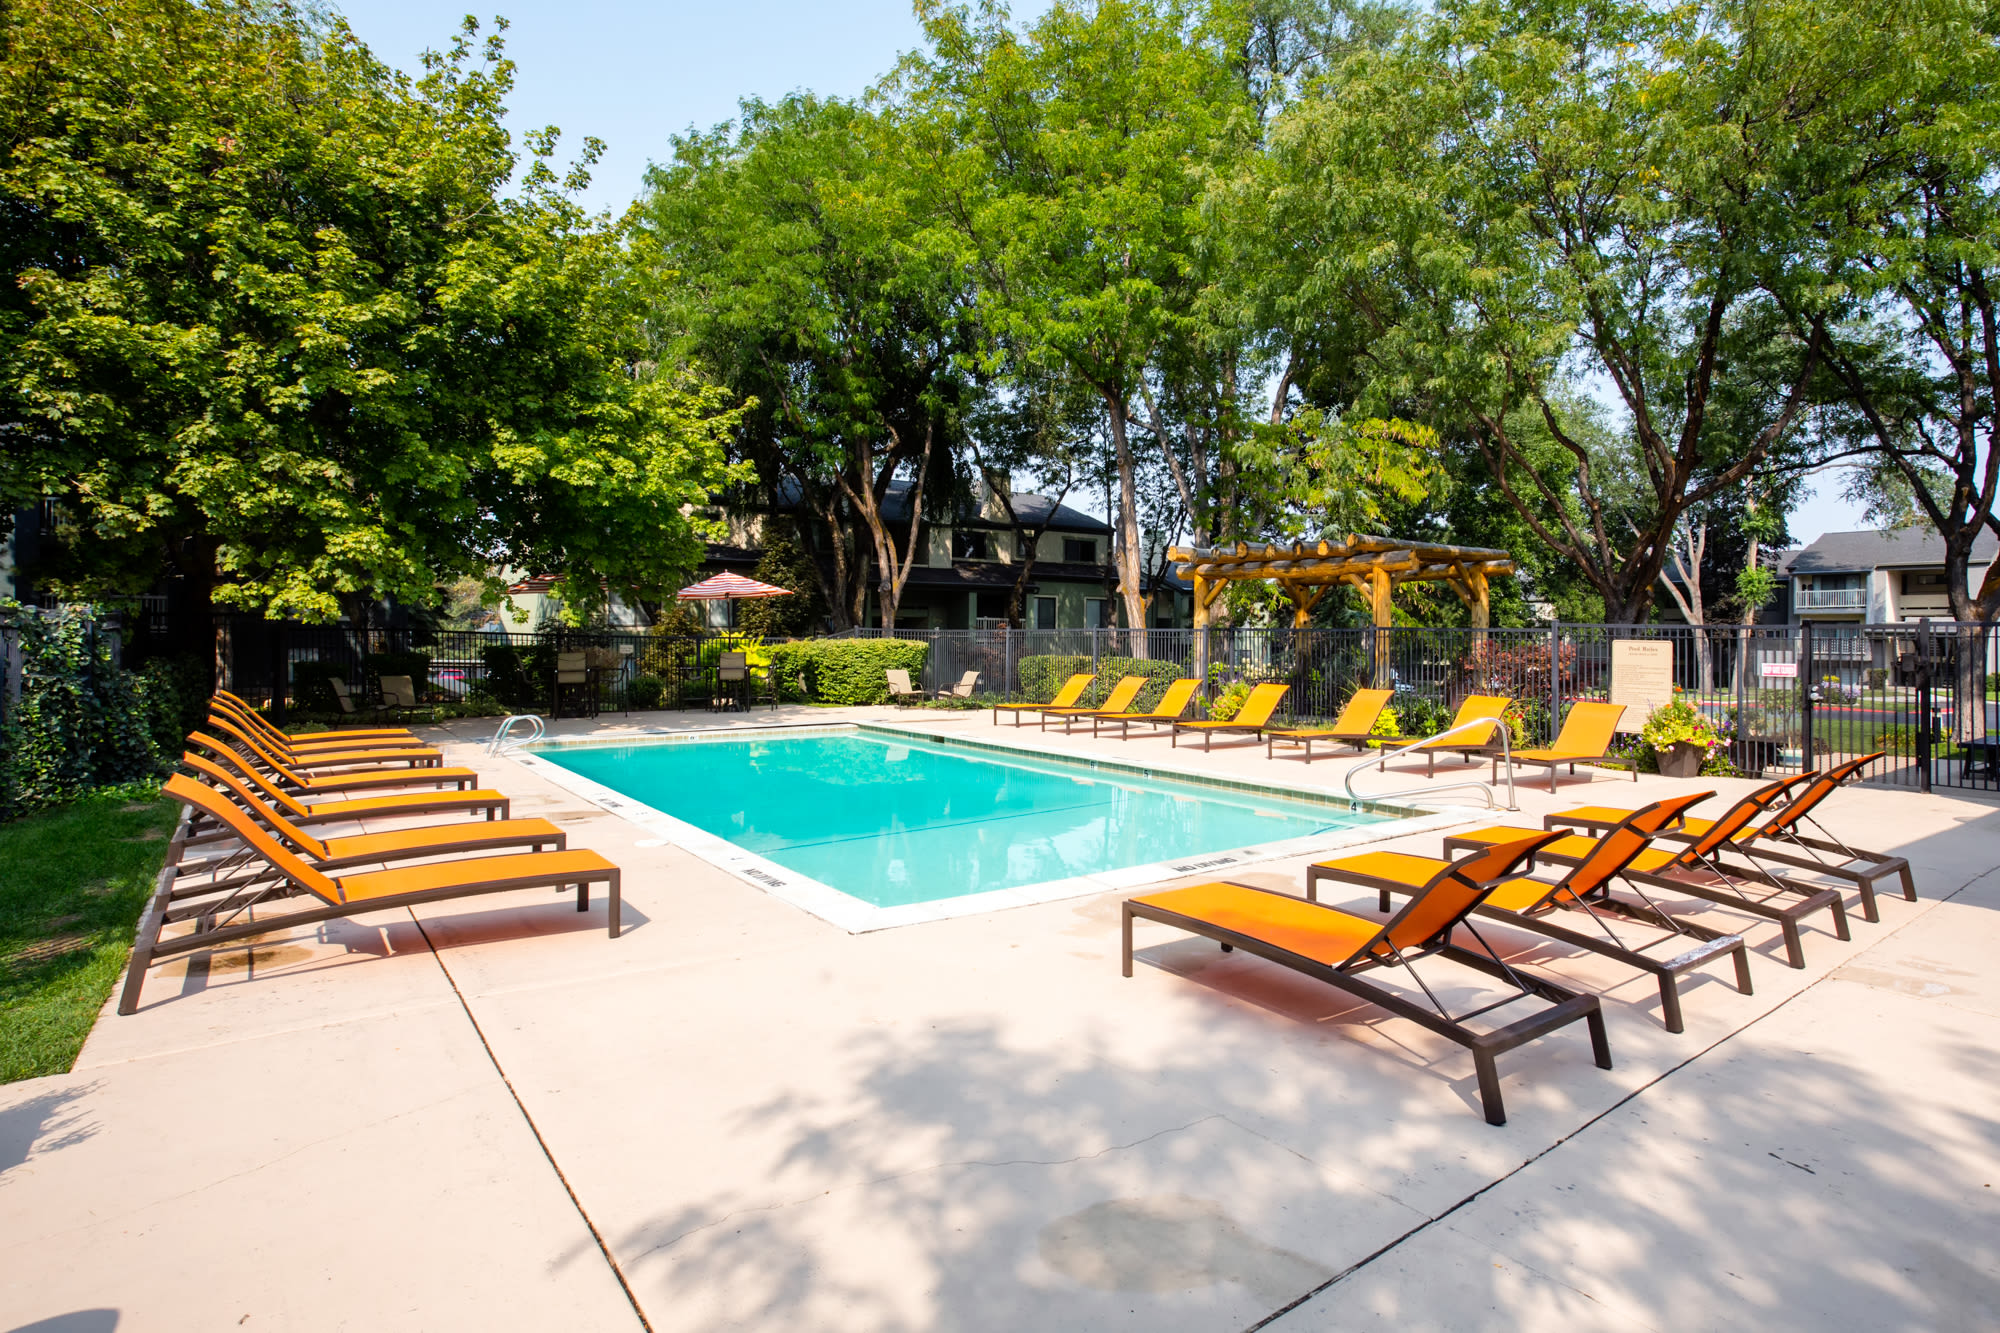 Pool Surrounded by Lounge Chairs and Lush Landscaping in Salt Lake City, UT